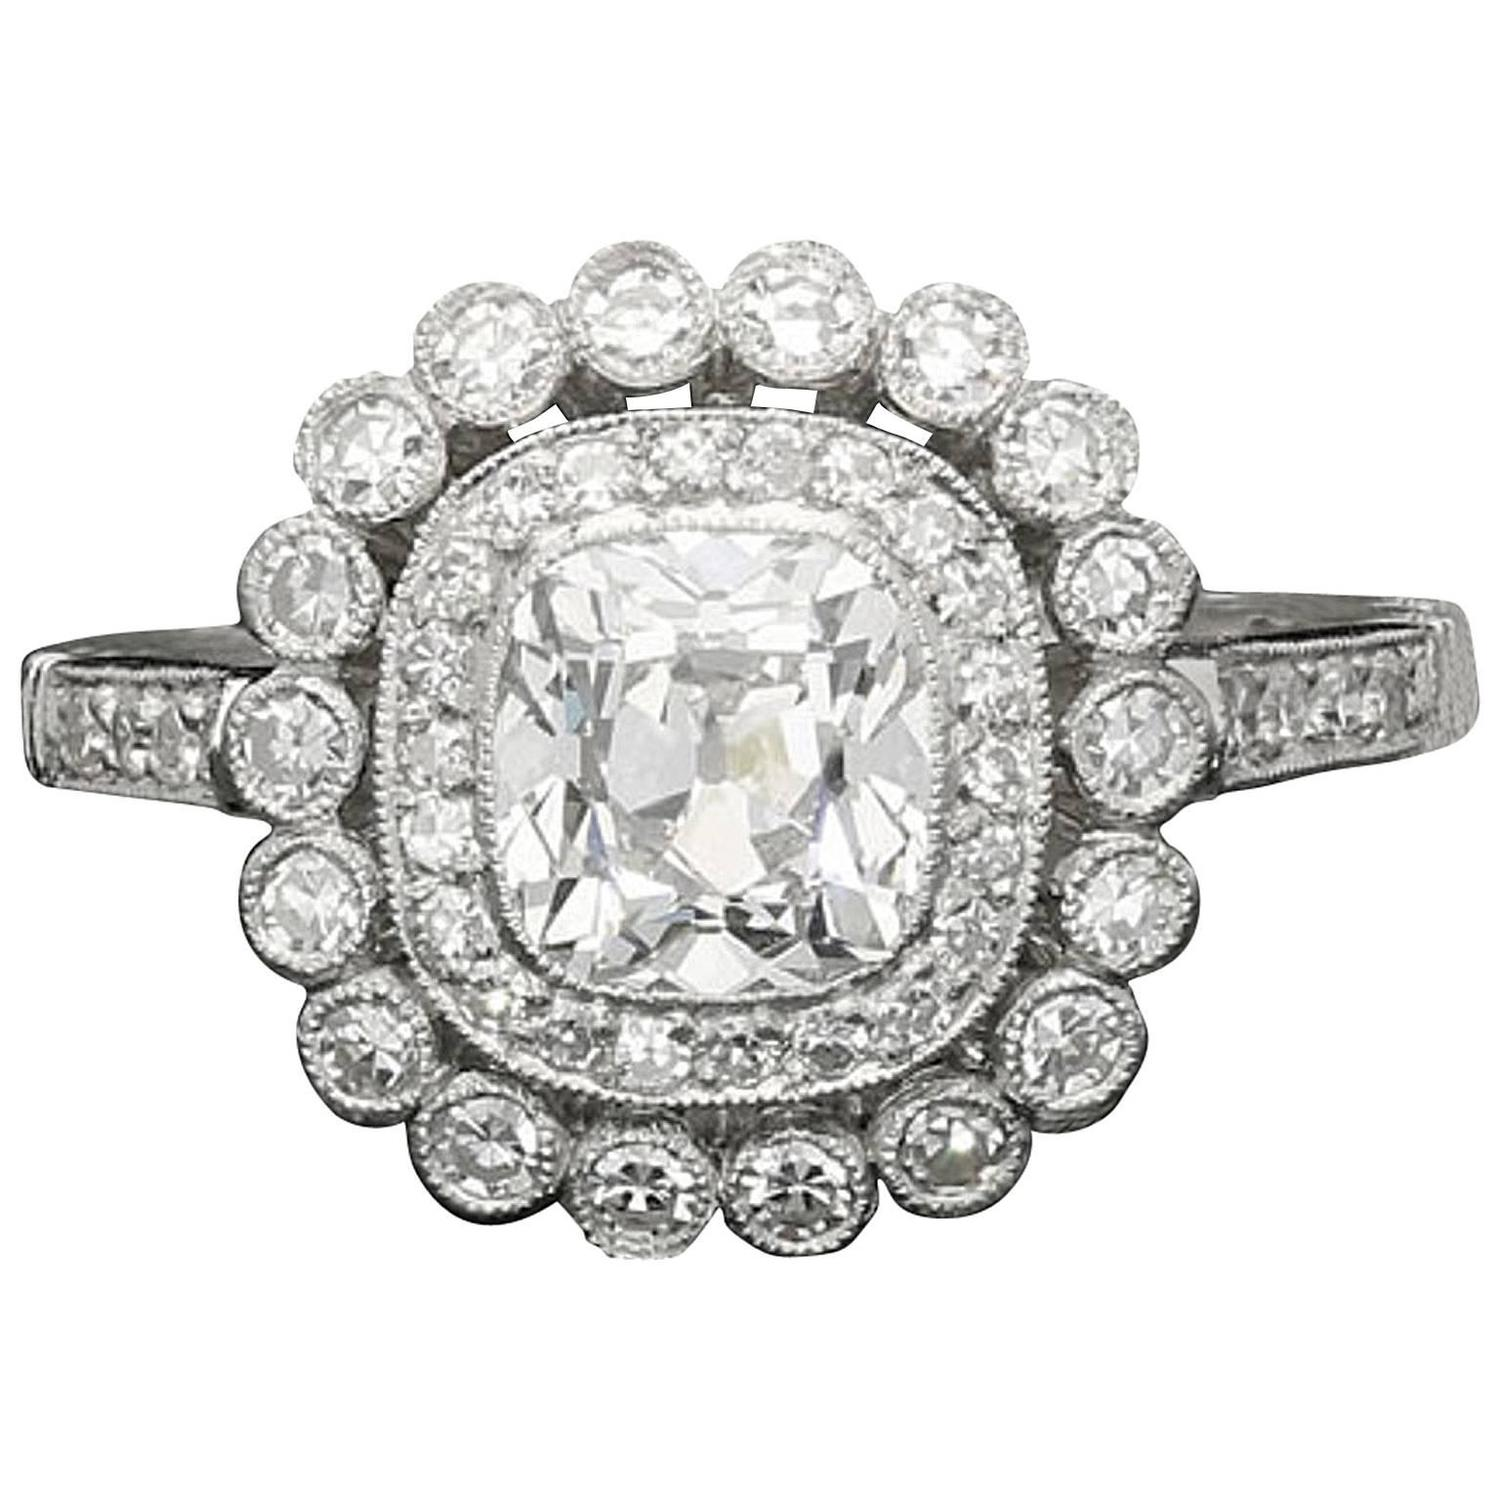 Large Double Ring Chandelier At 1stdibs: Old Mine Cushion Cut Diamond Double Cluster Ring By